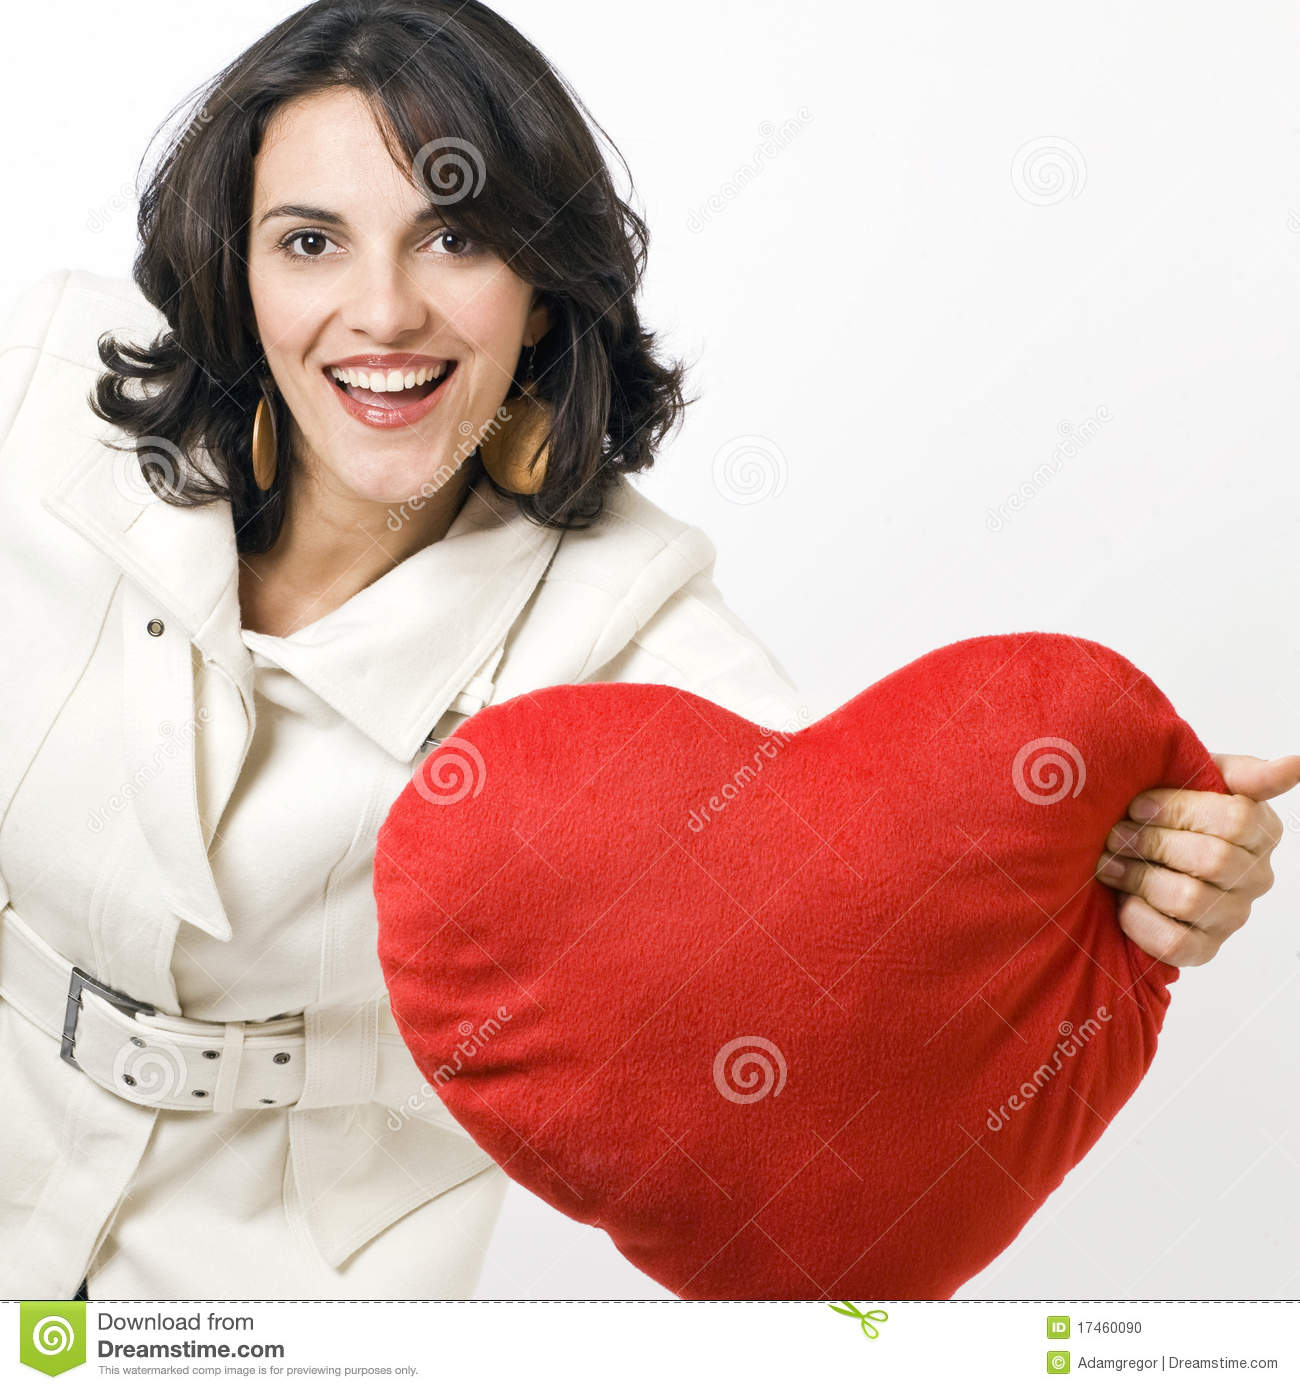 Woman with a big red heart